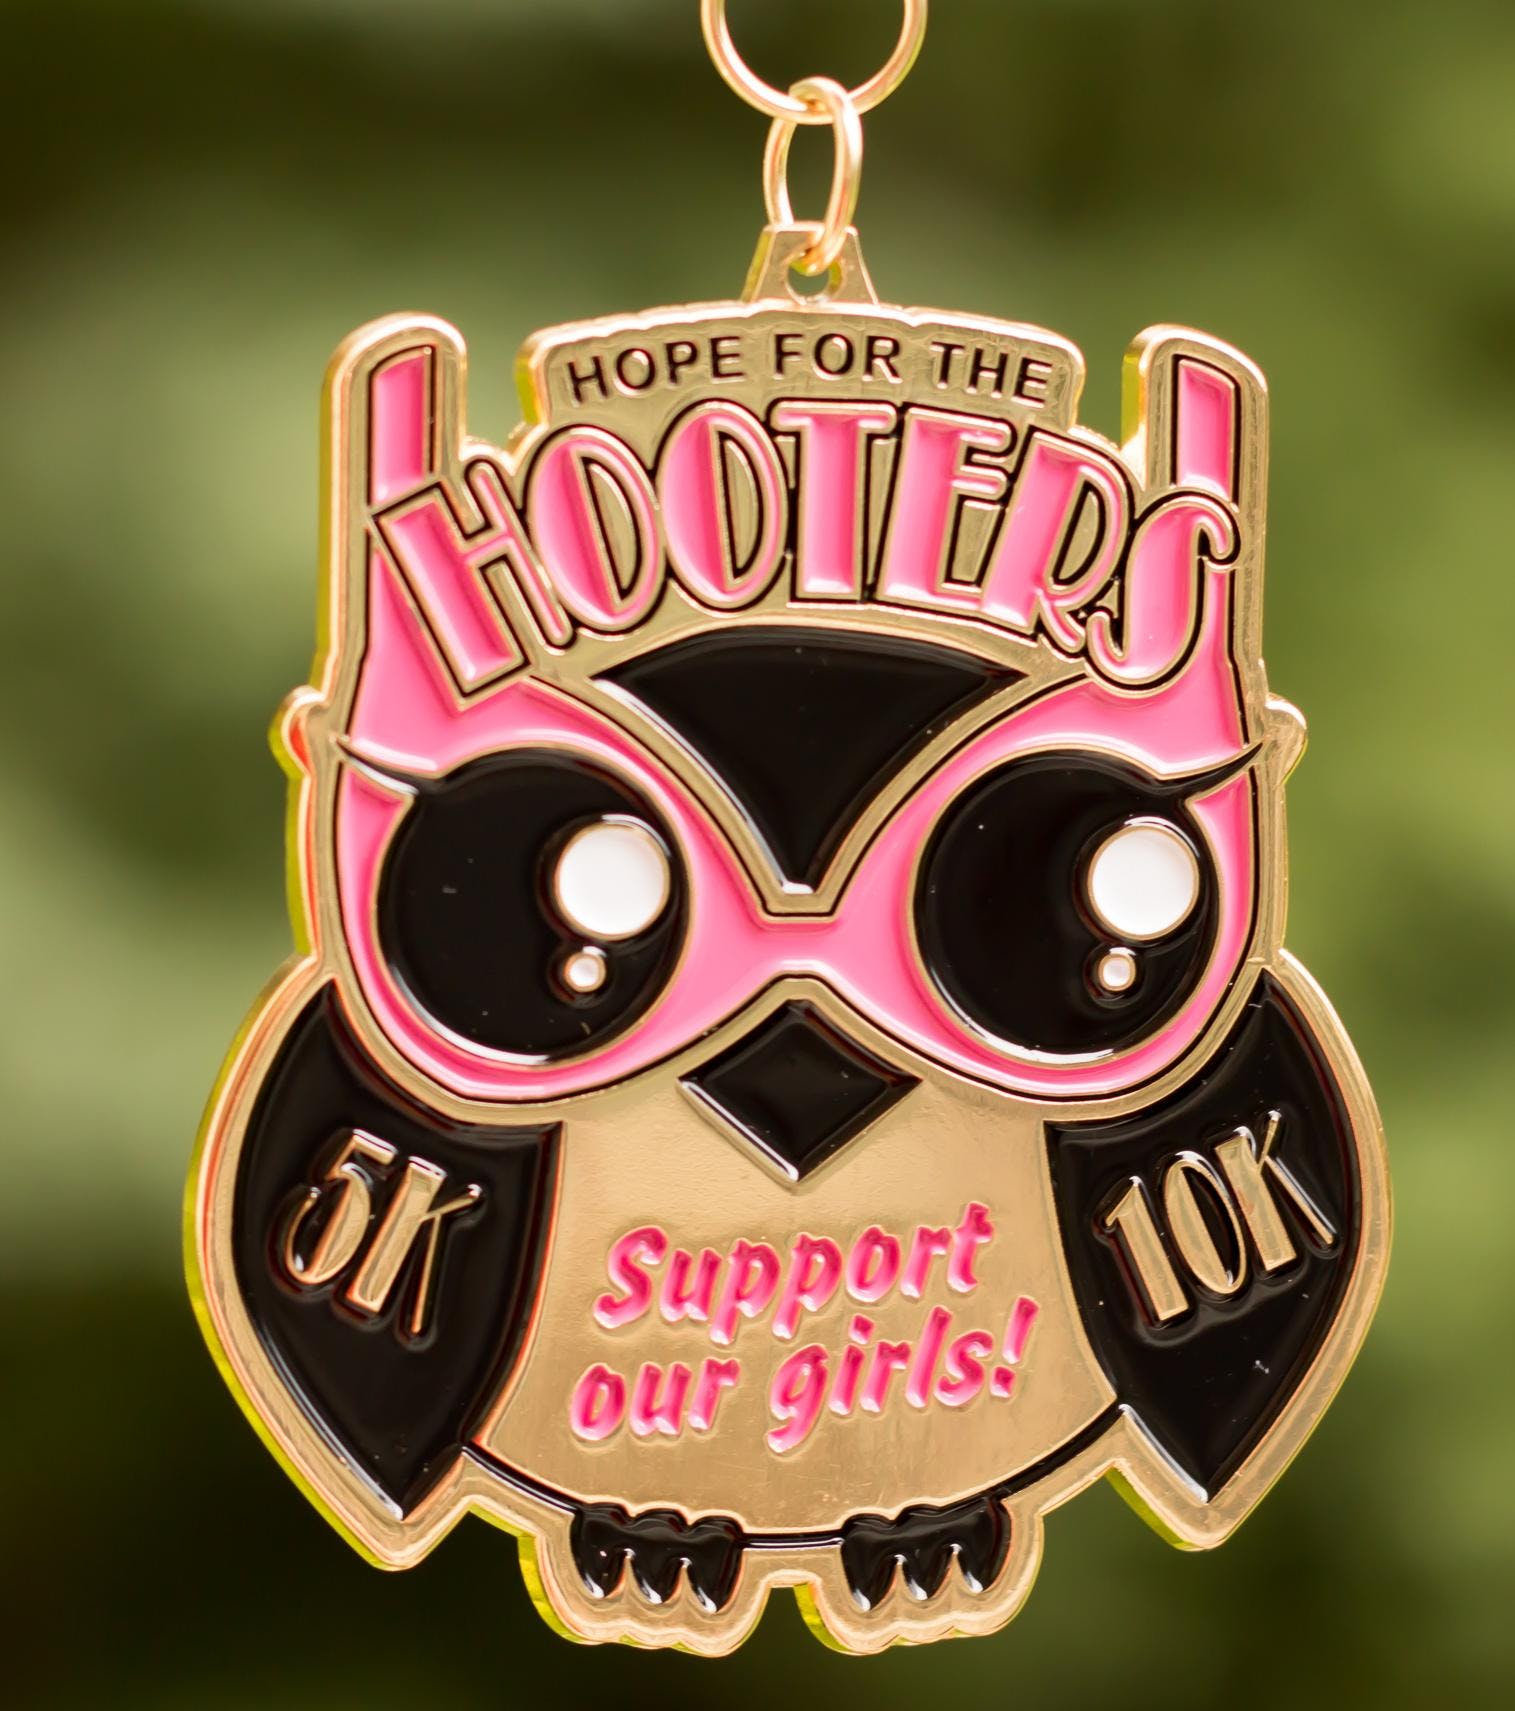 Now Only $10! Support Our Girls: Hope for the Hooters 5K & 10K- Scottsdale